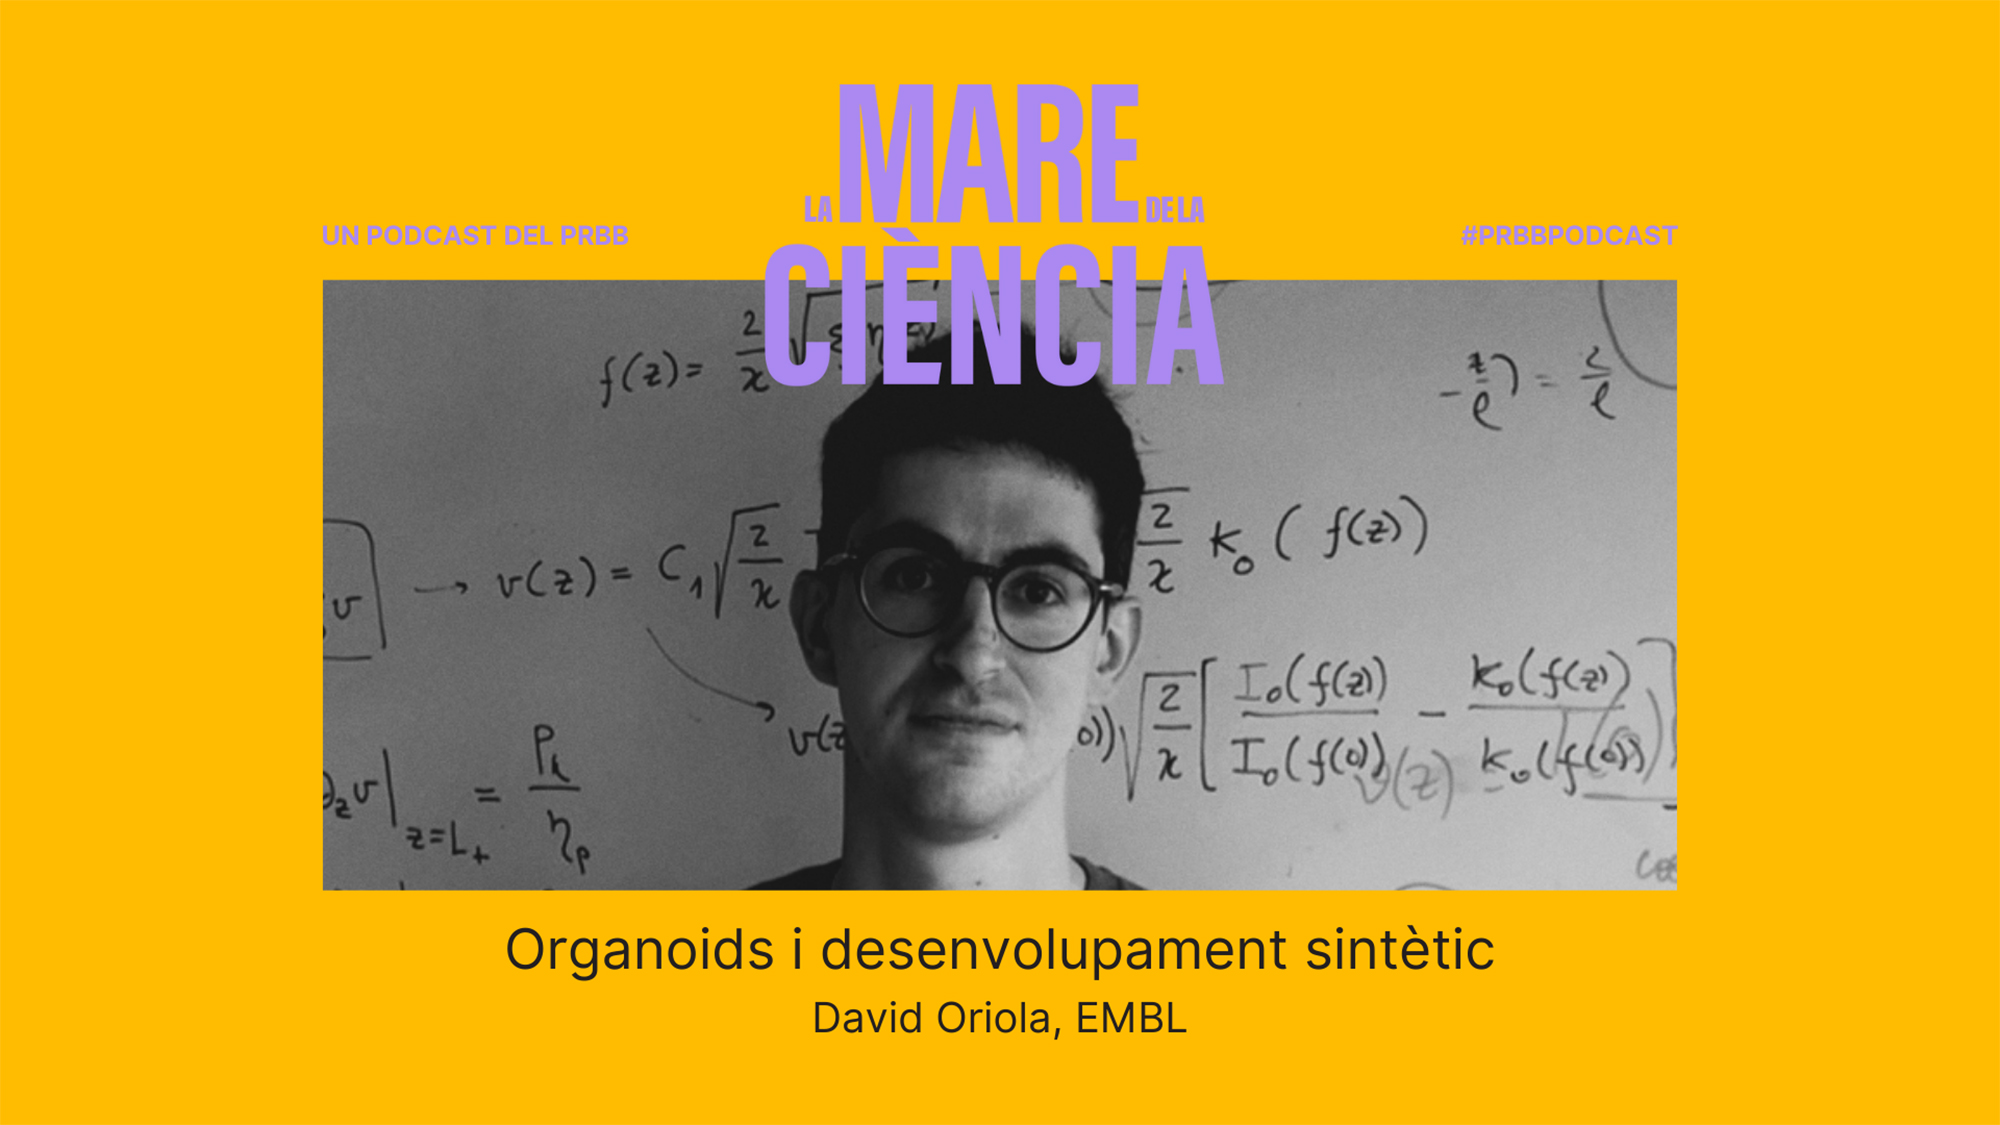 """David Oriola (EMBL): """"How can a protein do its job when there are tones of proteins and molecules randomly moving around?"""""""